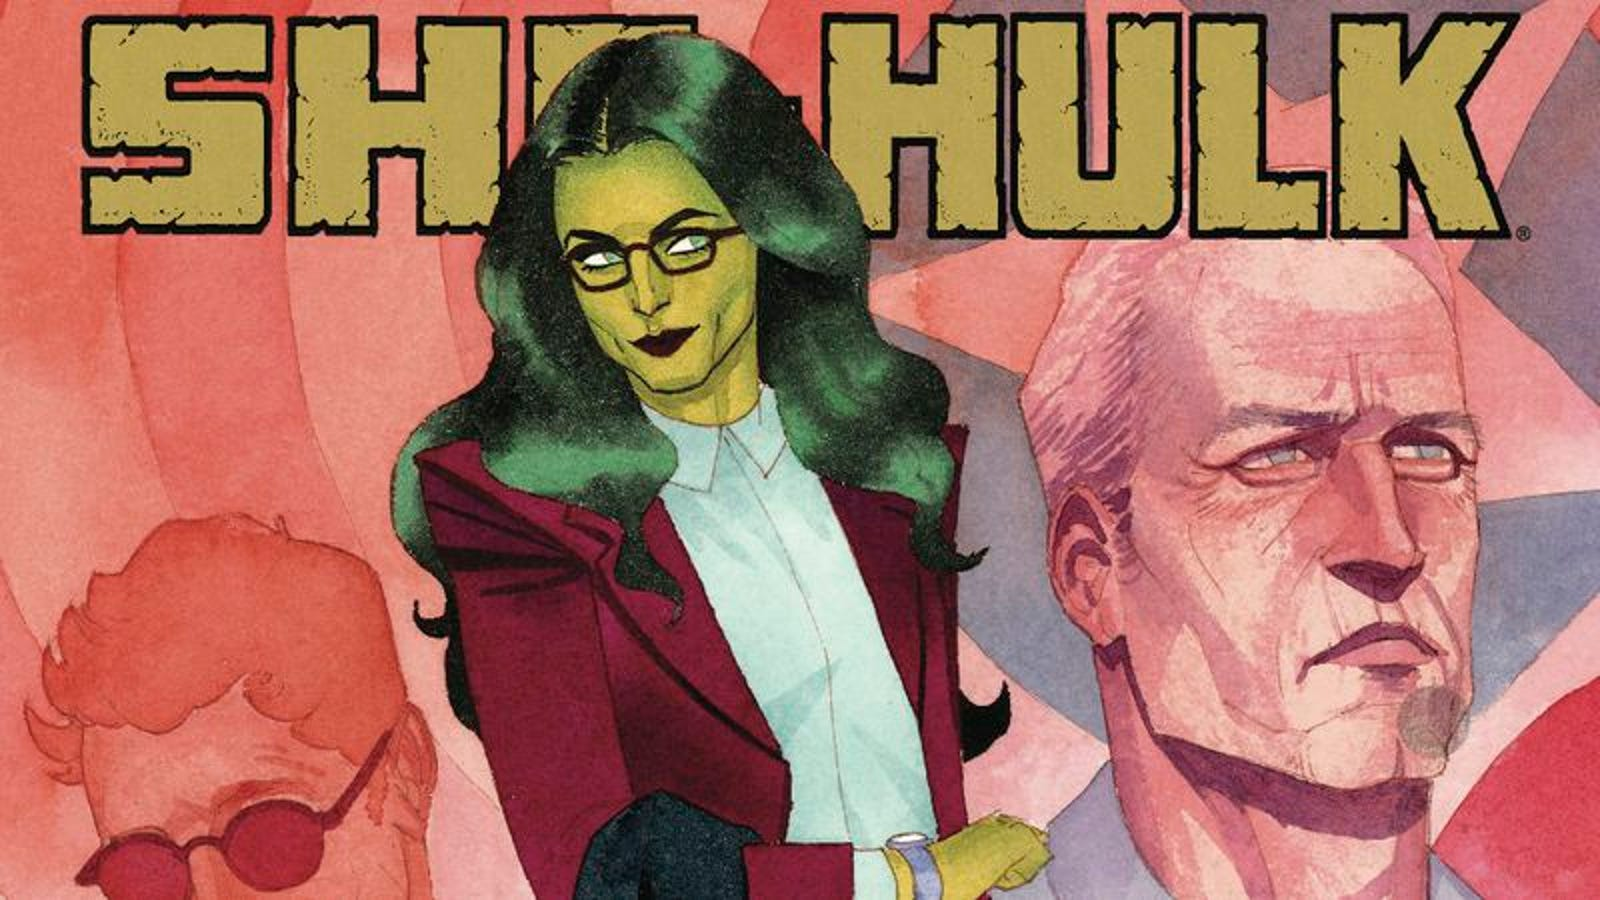 She-Hulk and Moon Knight are getting their own Disney+ shows, too